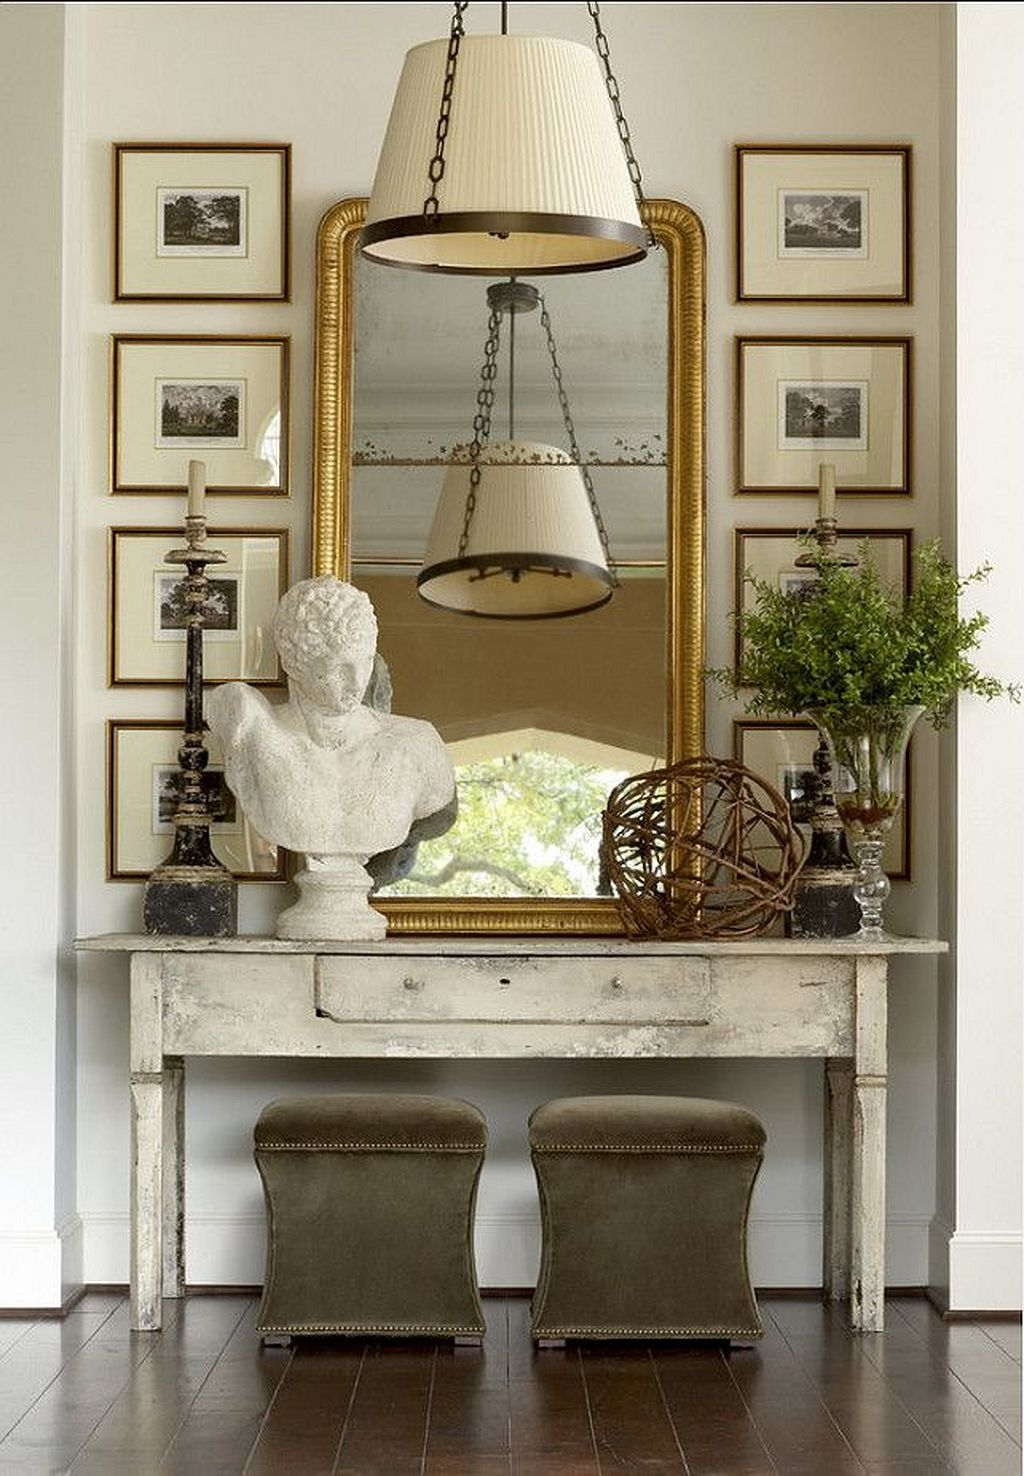 Stunning 100+ French Home Decor Ideas https://pinarchitecture.com/100-french-home-decor-ideas/